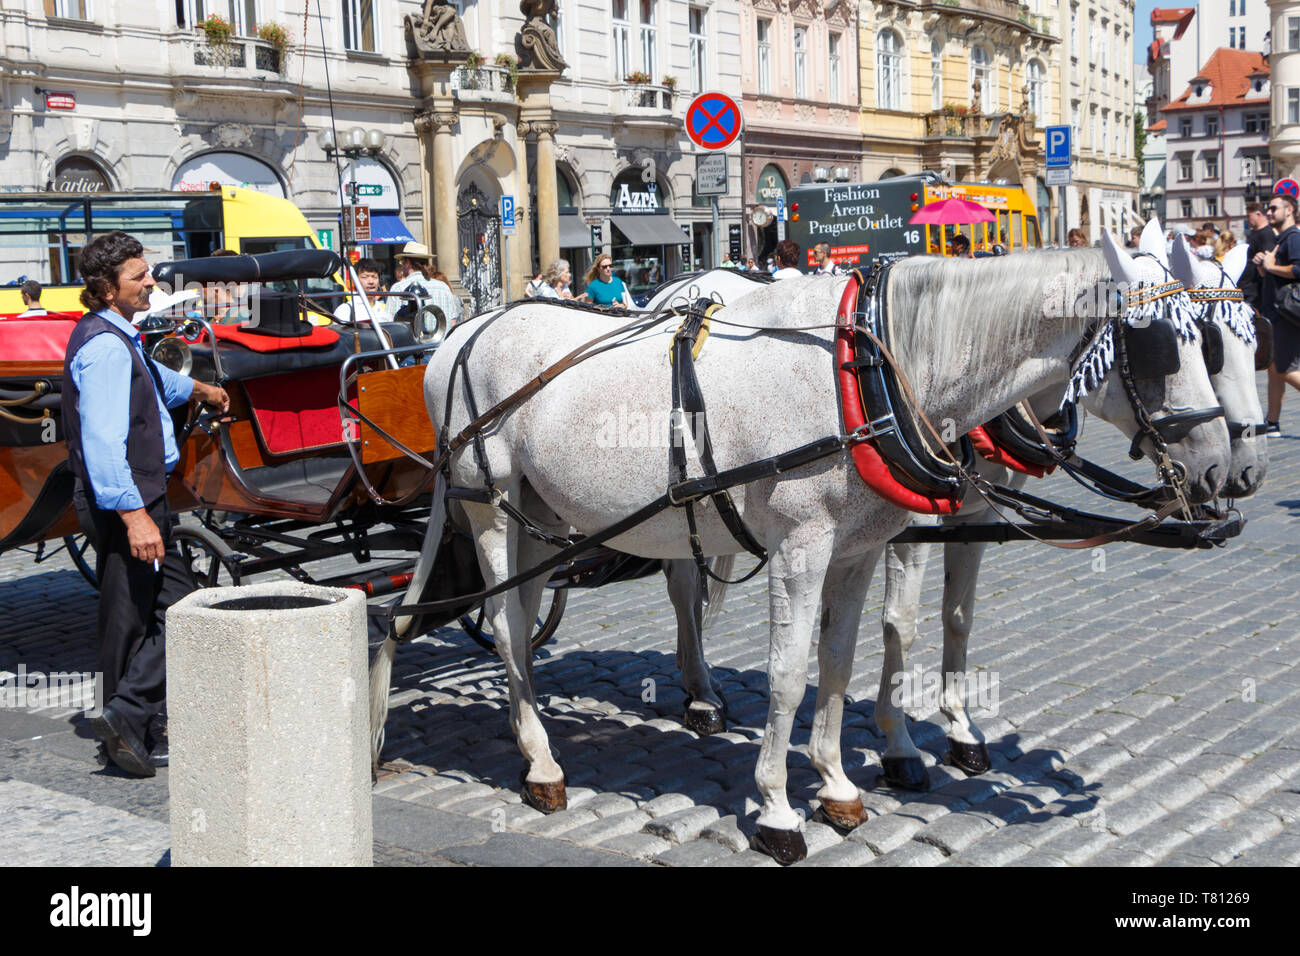 PRAGUE - CZECH REPUBLIC, AUGUST 14 : Two grey horses hitching up and their coachman, August 14, 2017 - Stock Image